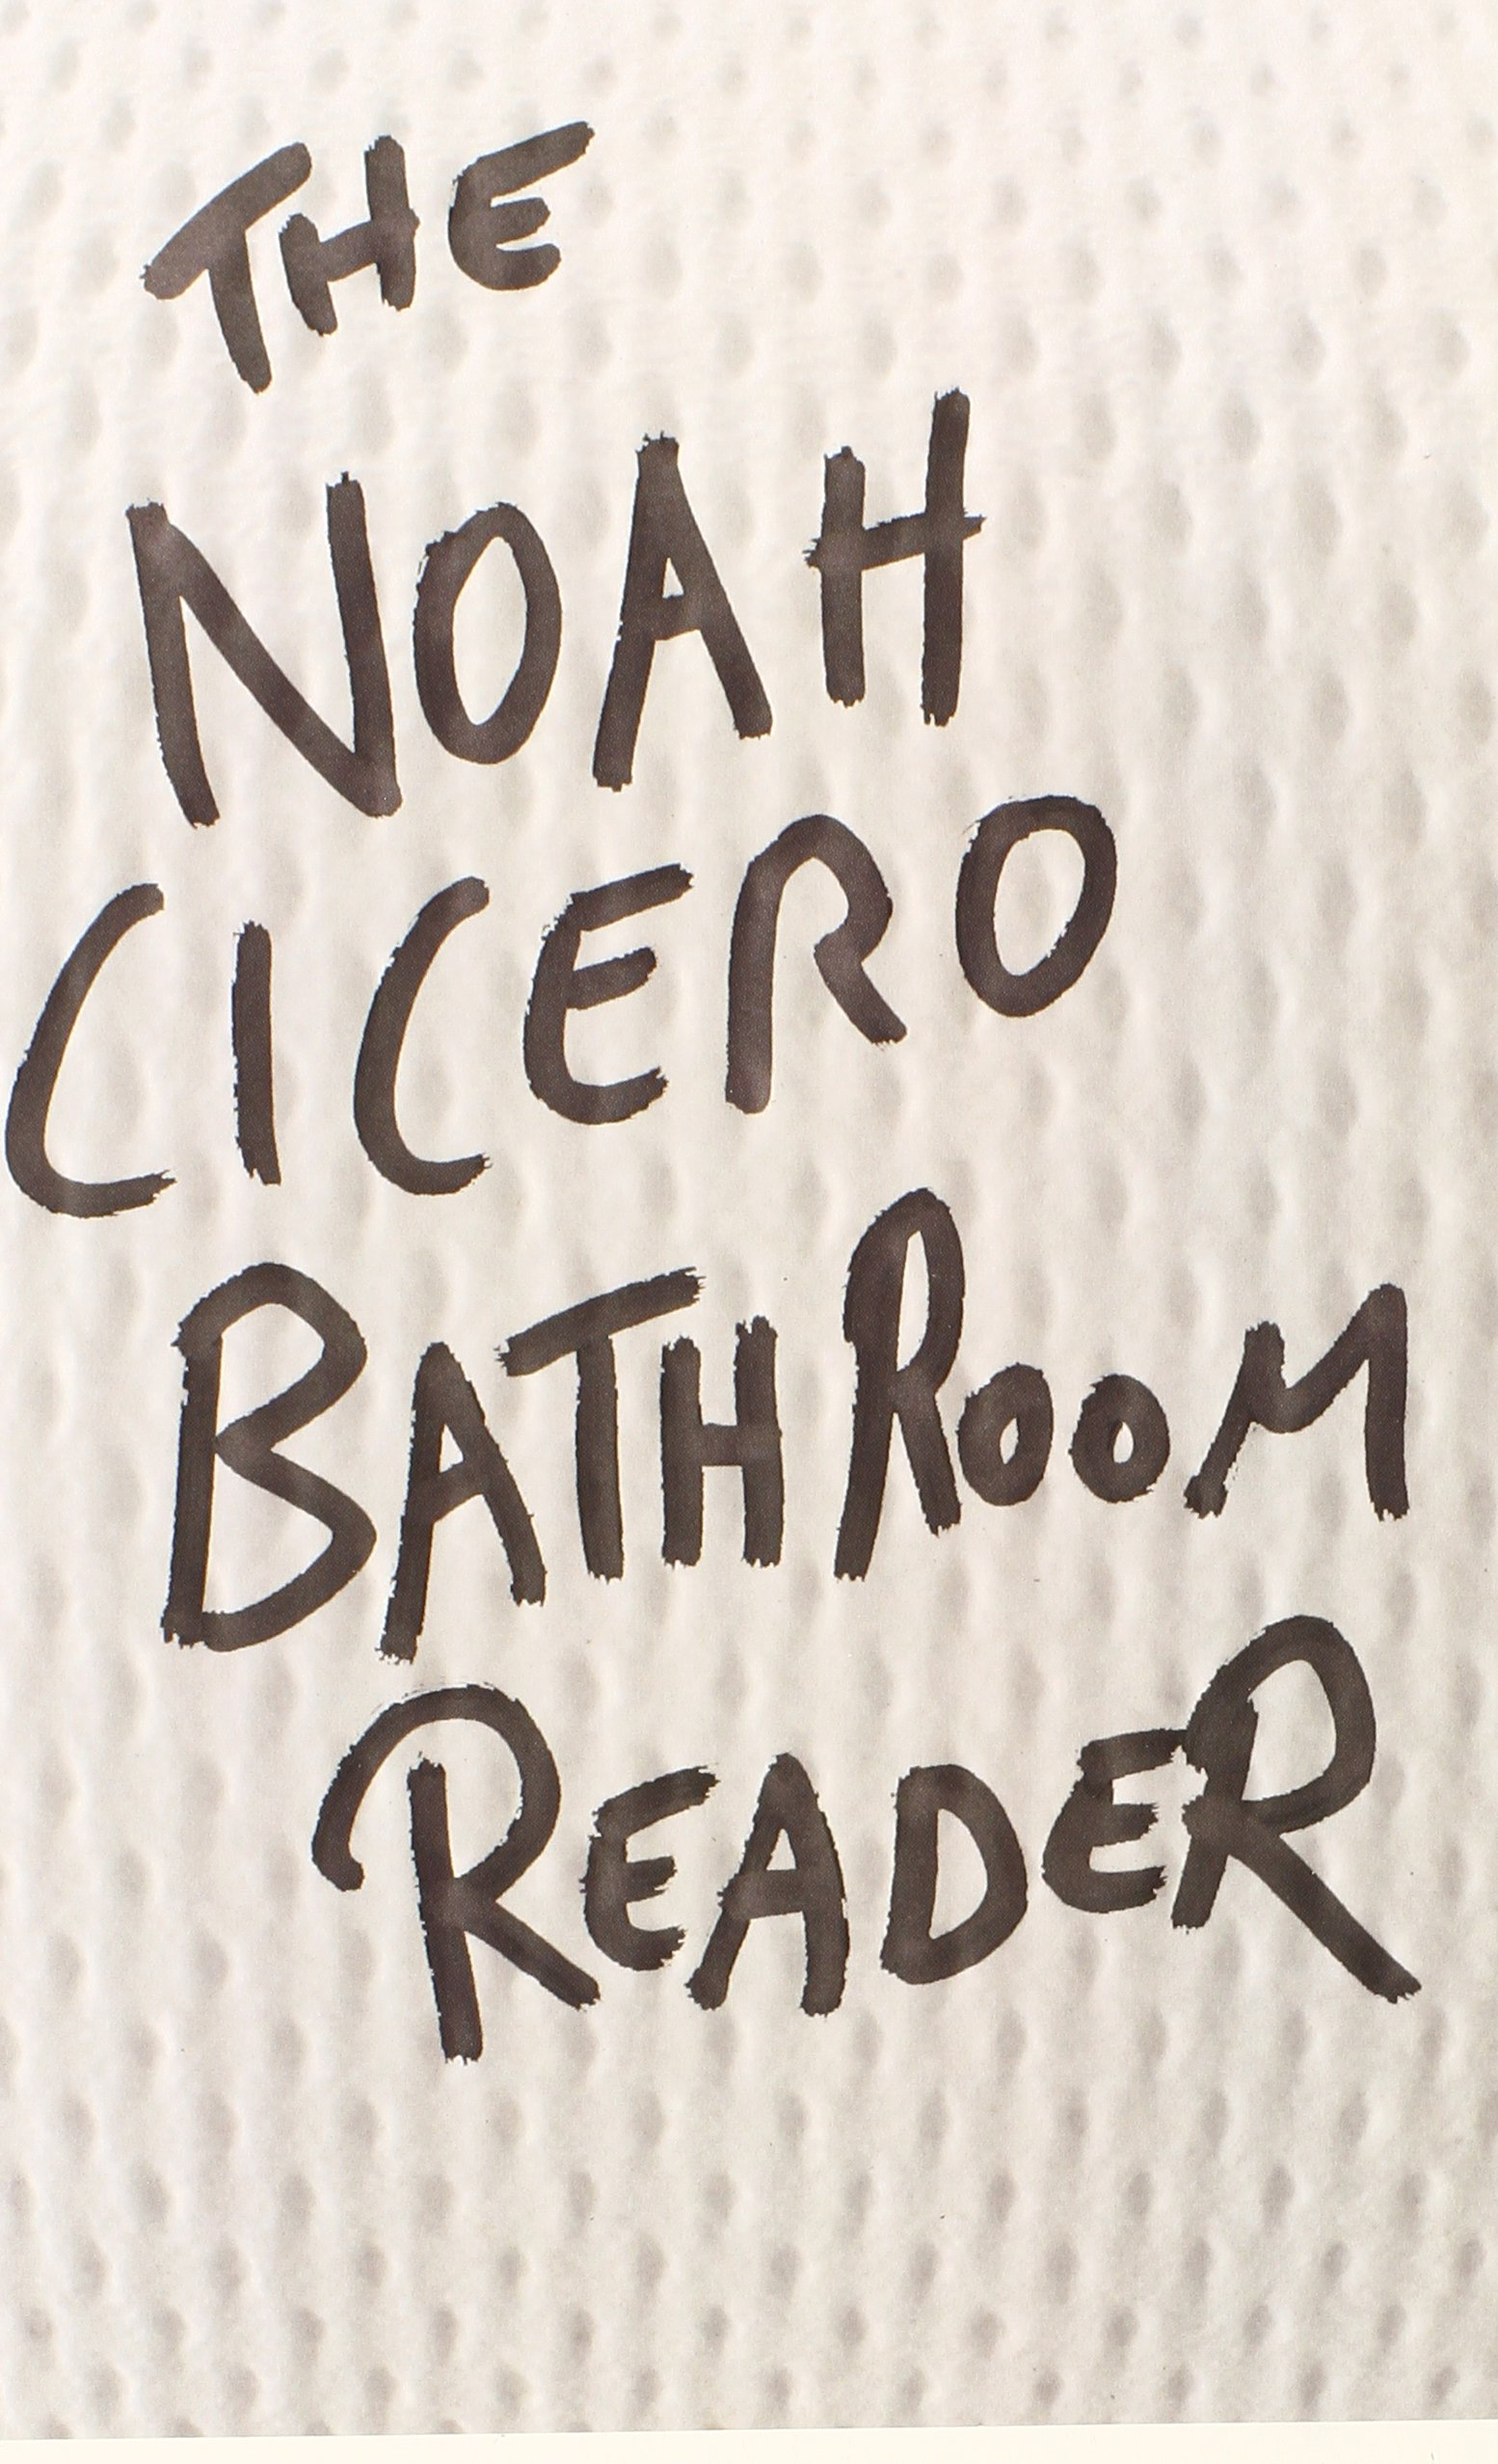 Read Online The Noah Cicero Bathroom Reader PDF